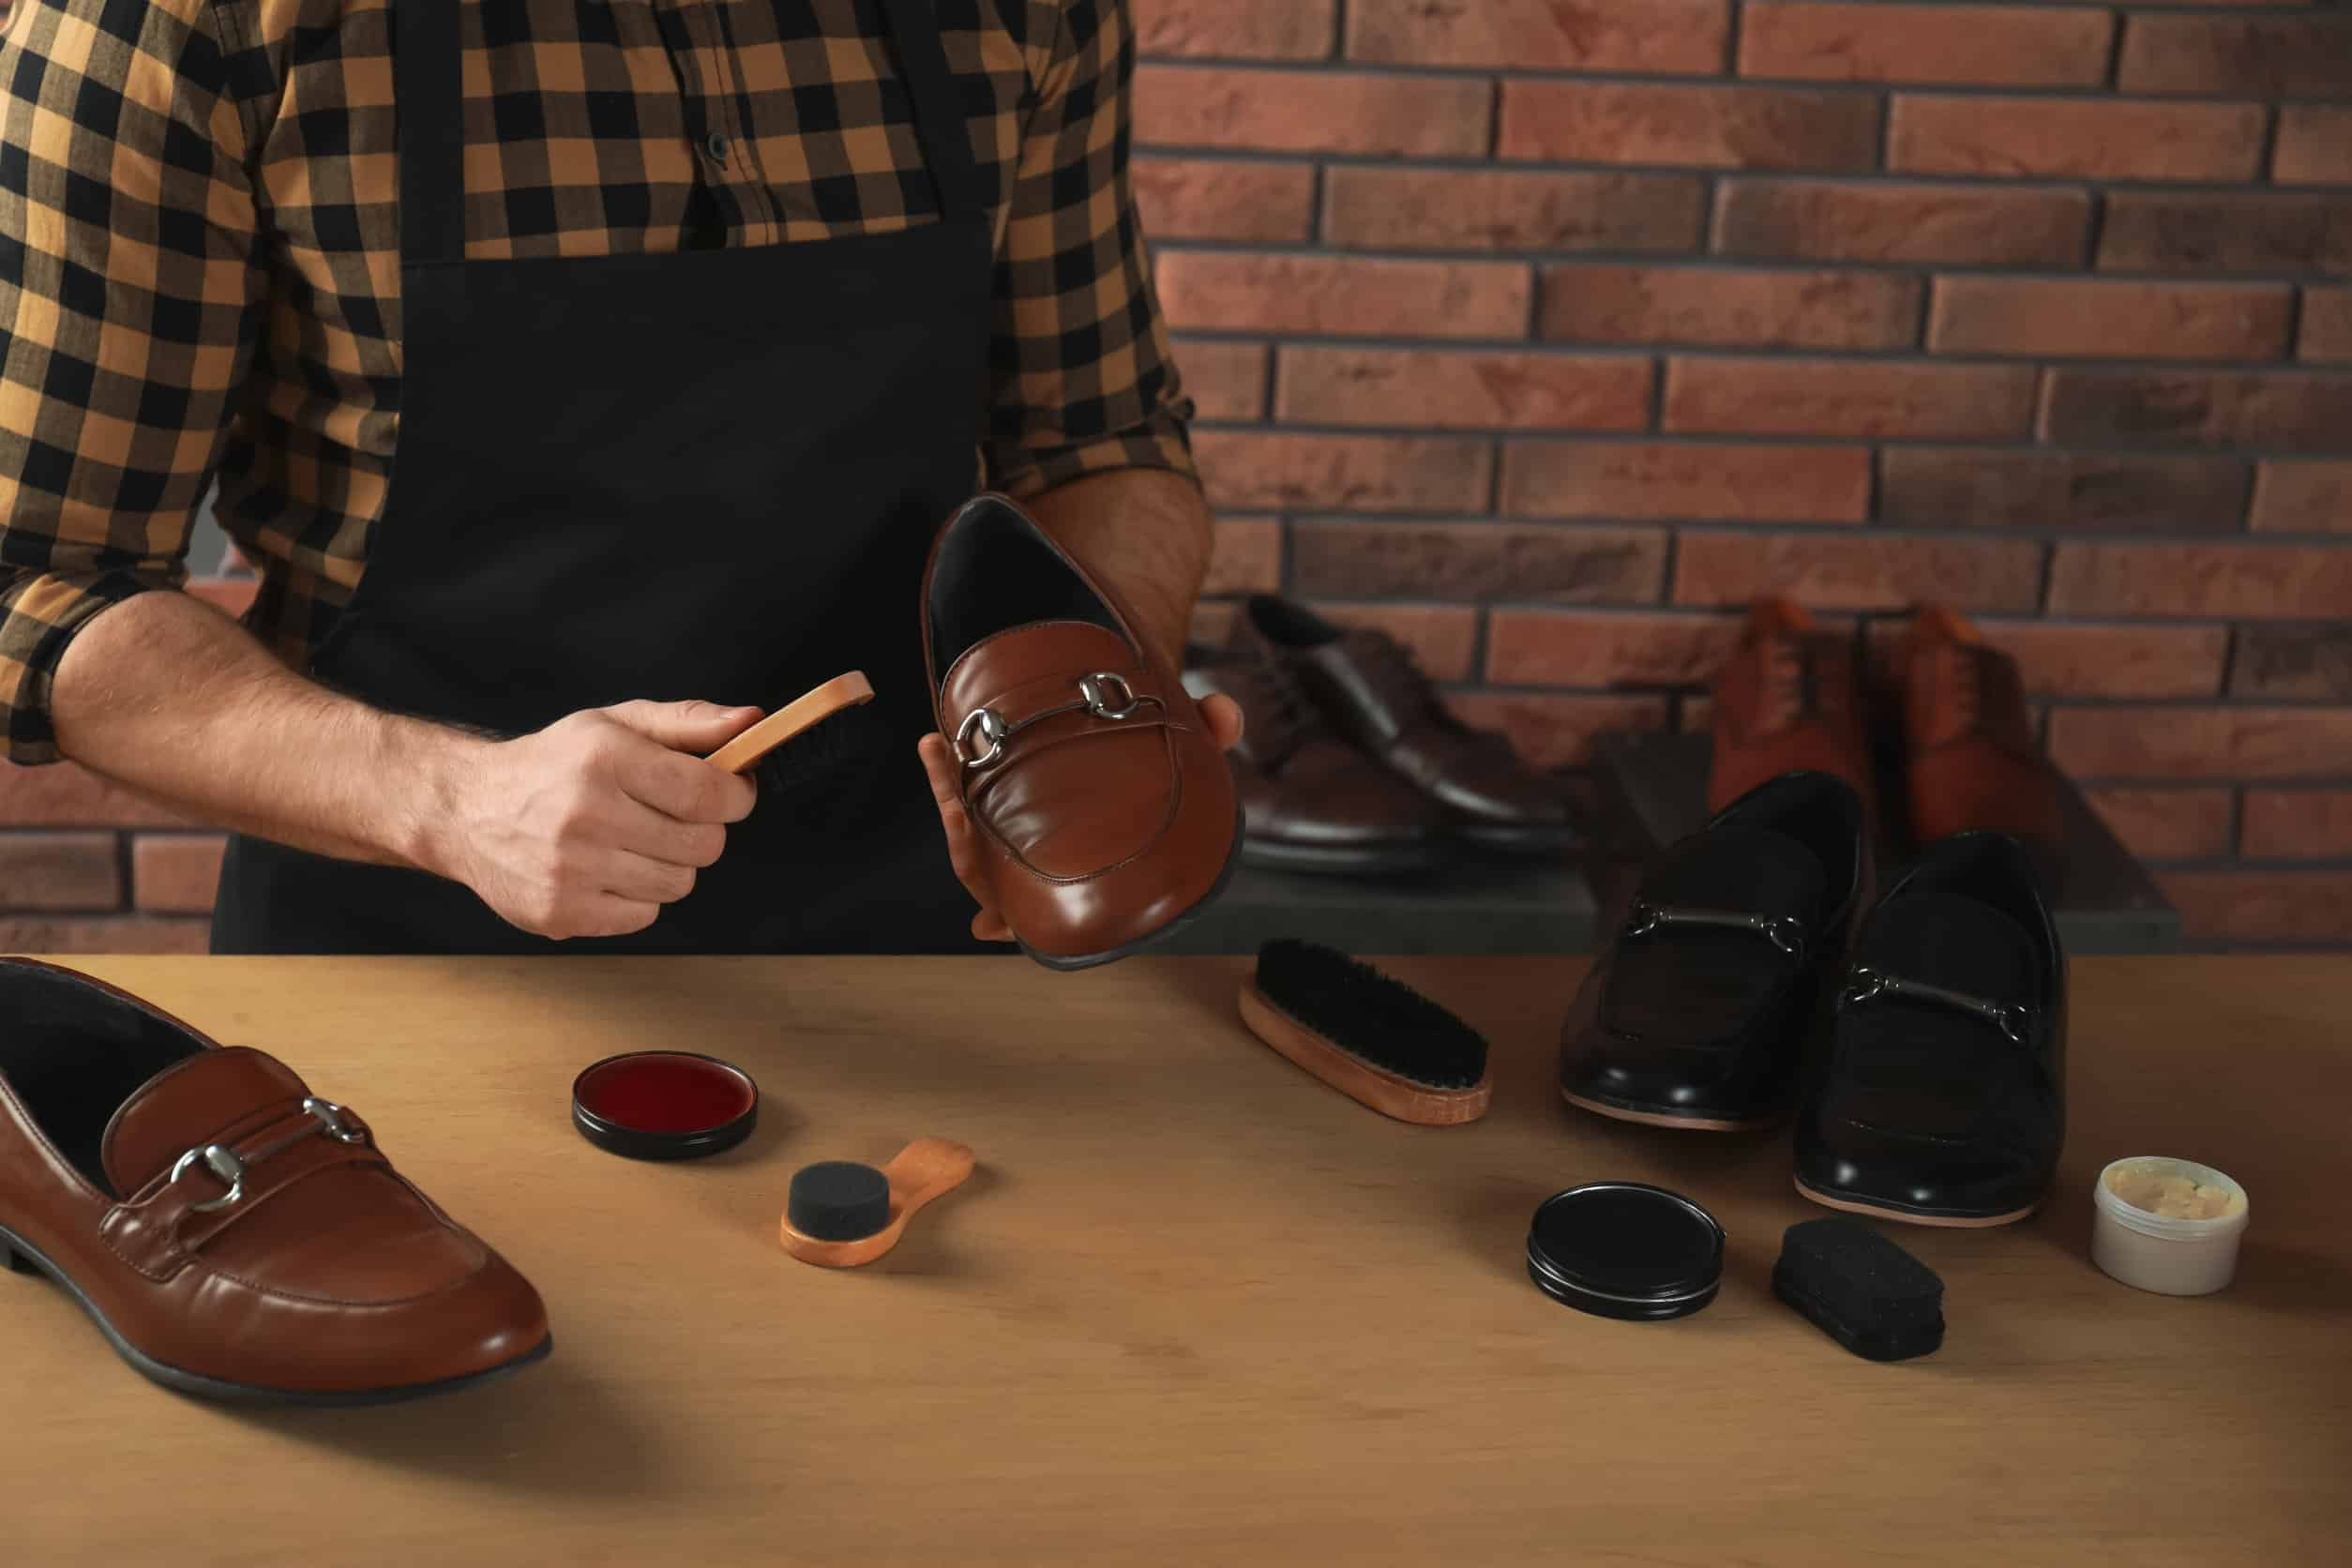 Can You Use Beeswax on Leather?